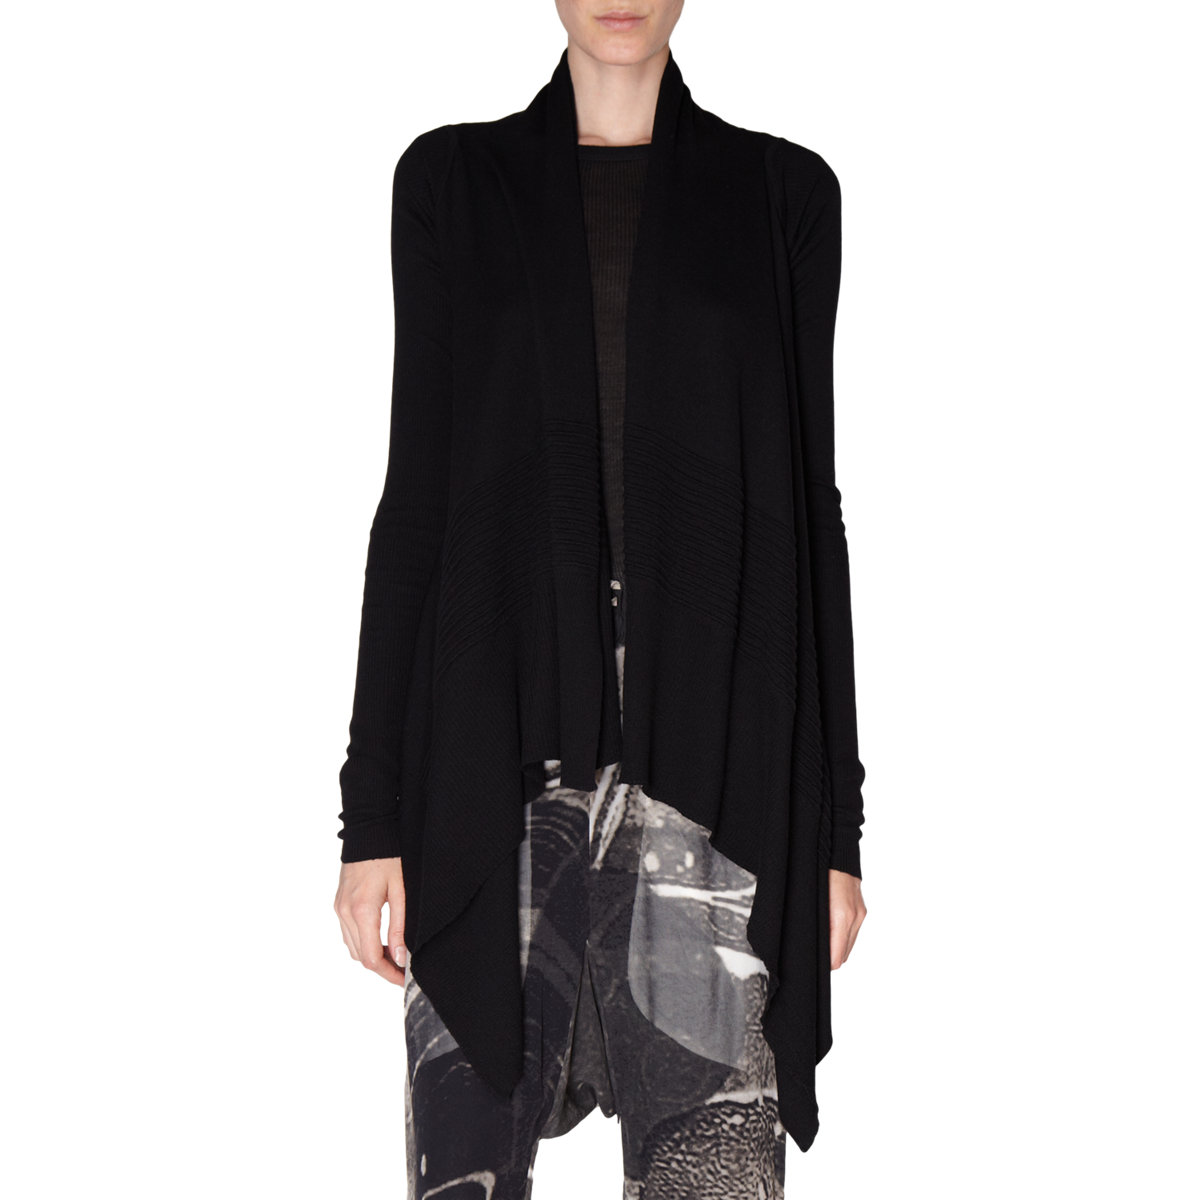 Find great deals on eBay for black drape cardigan. Shop with confidence.